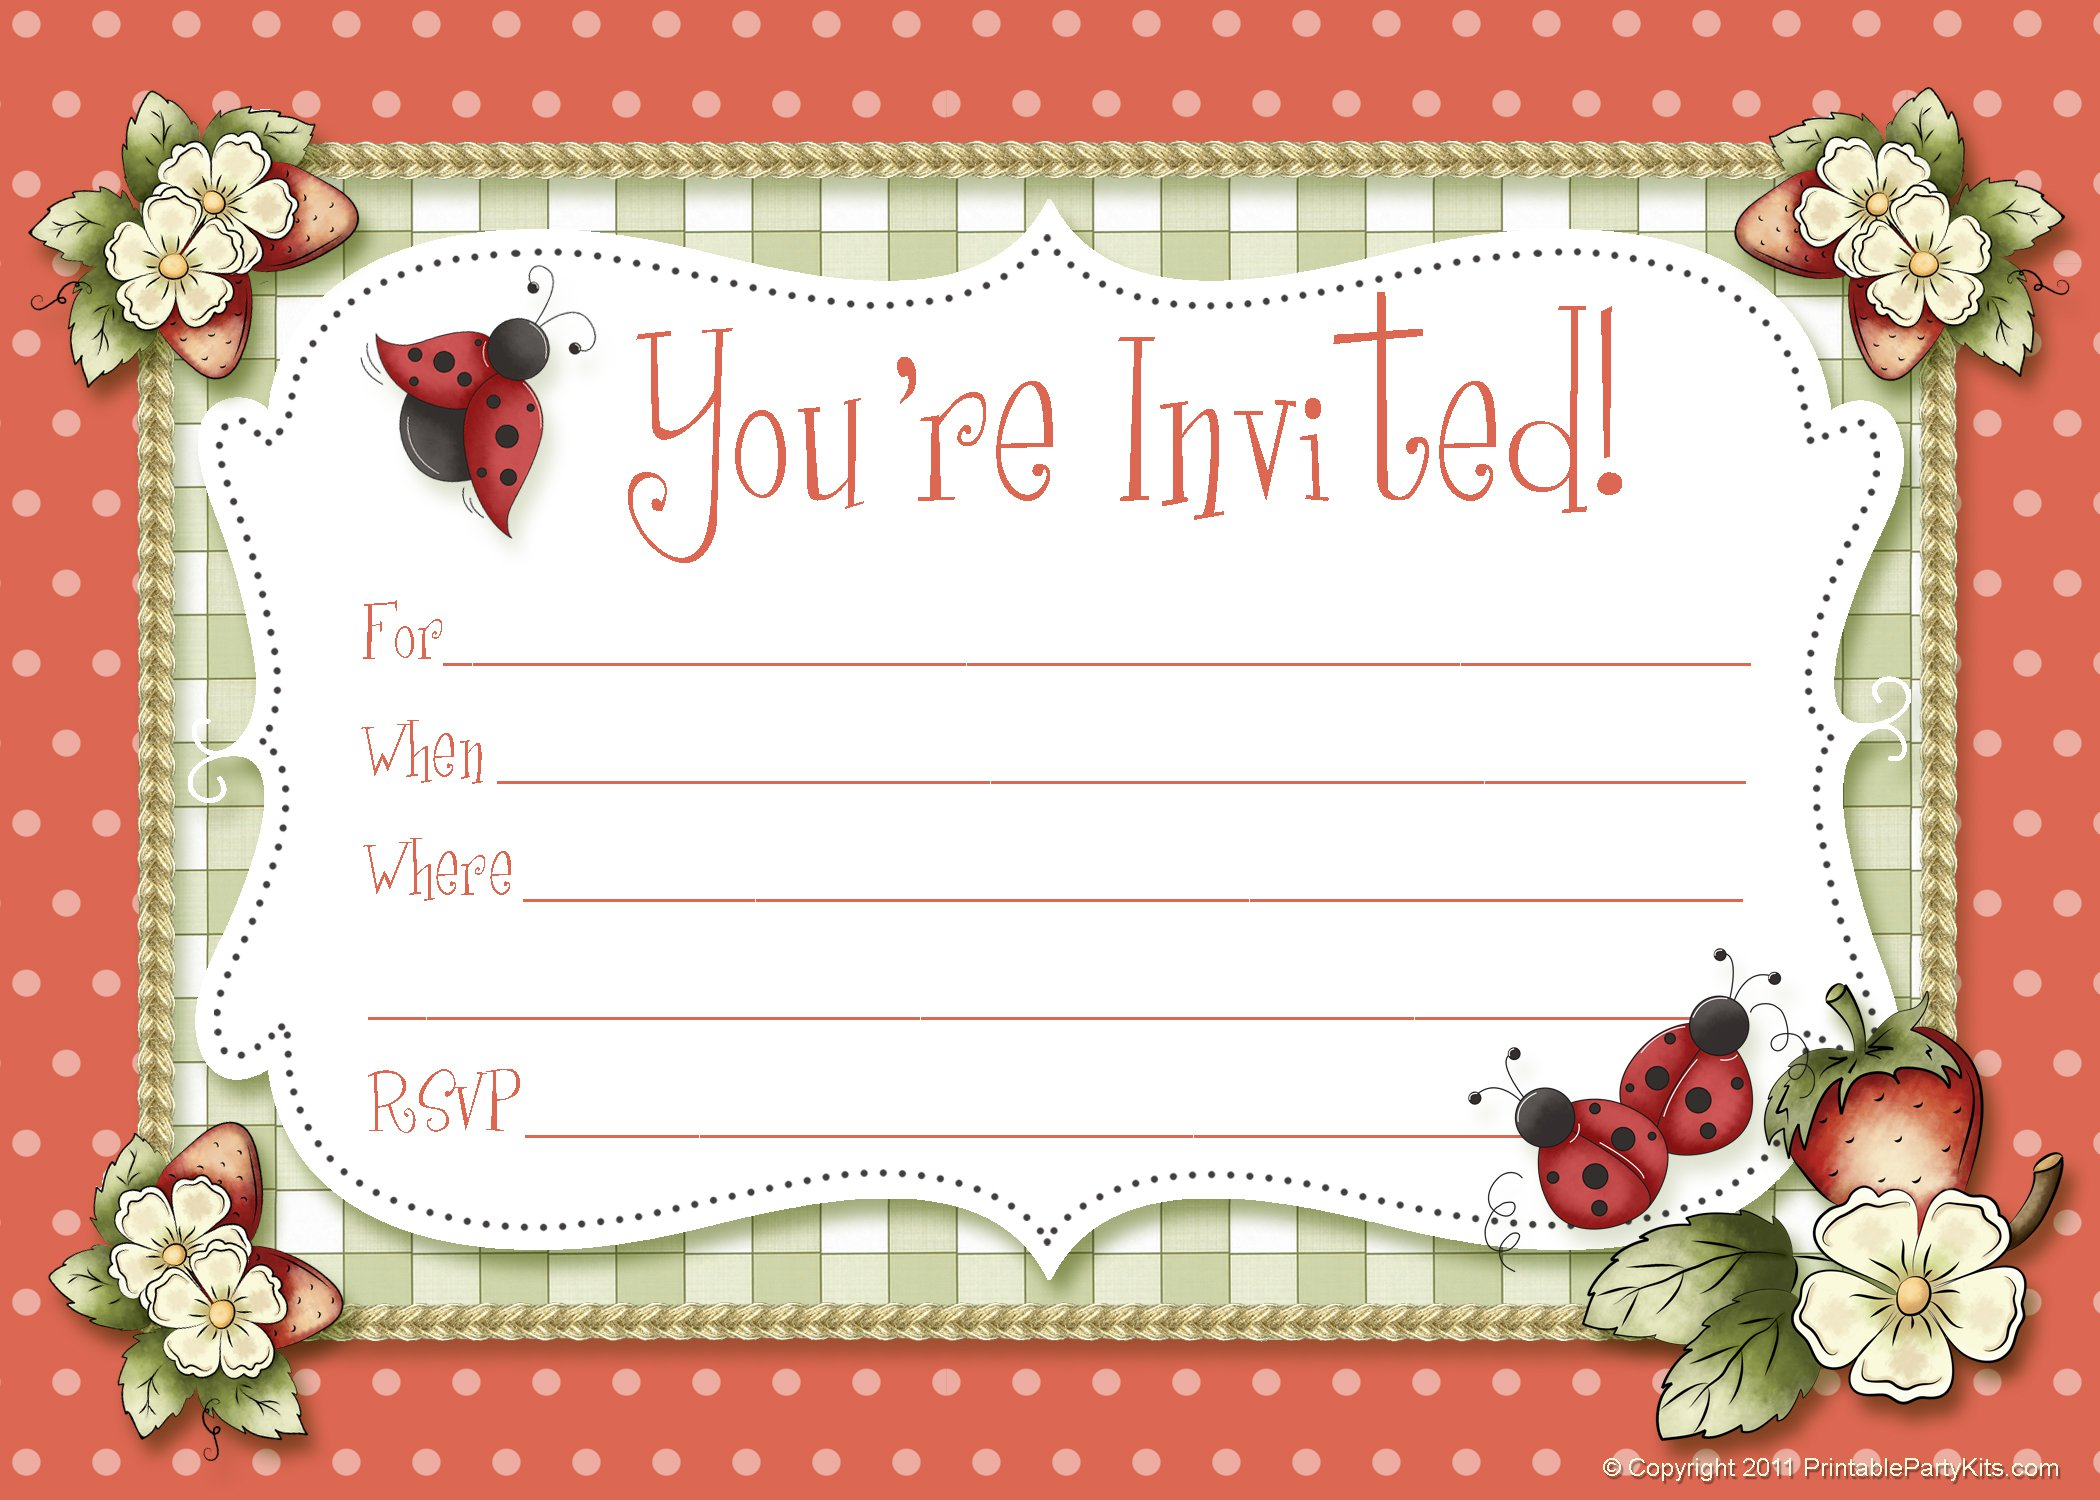 create birthday invitations free online with photo ; birthday-invitation-maker-with-photo